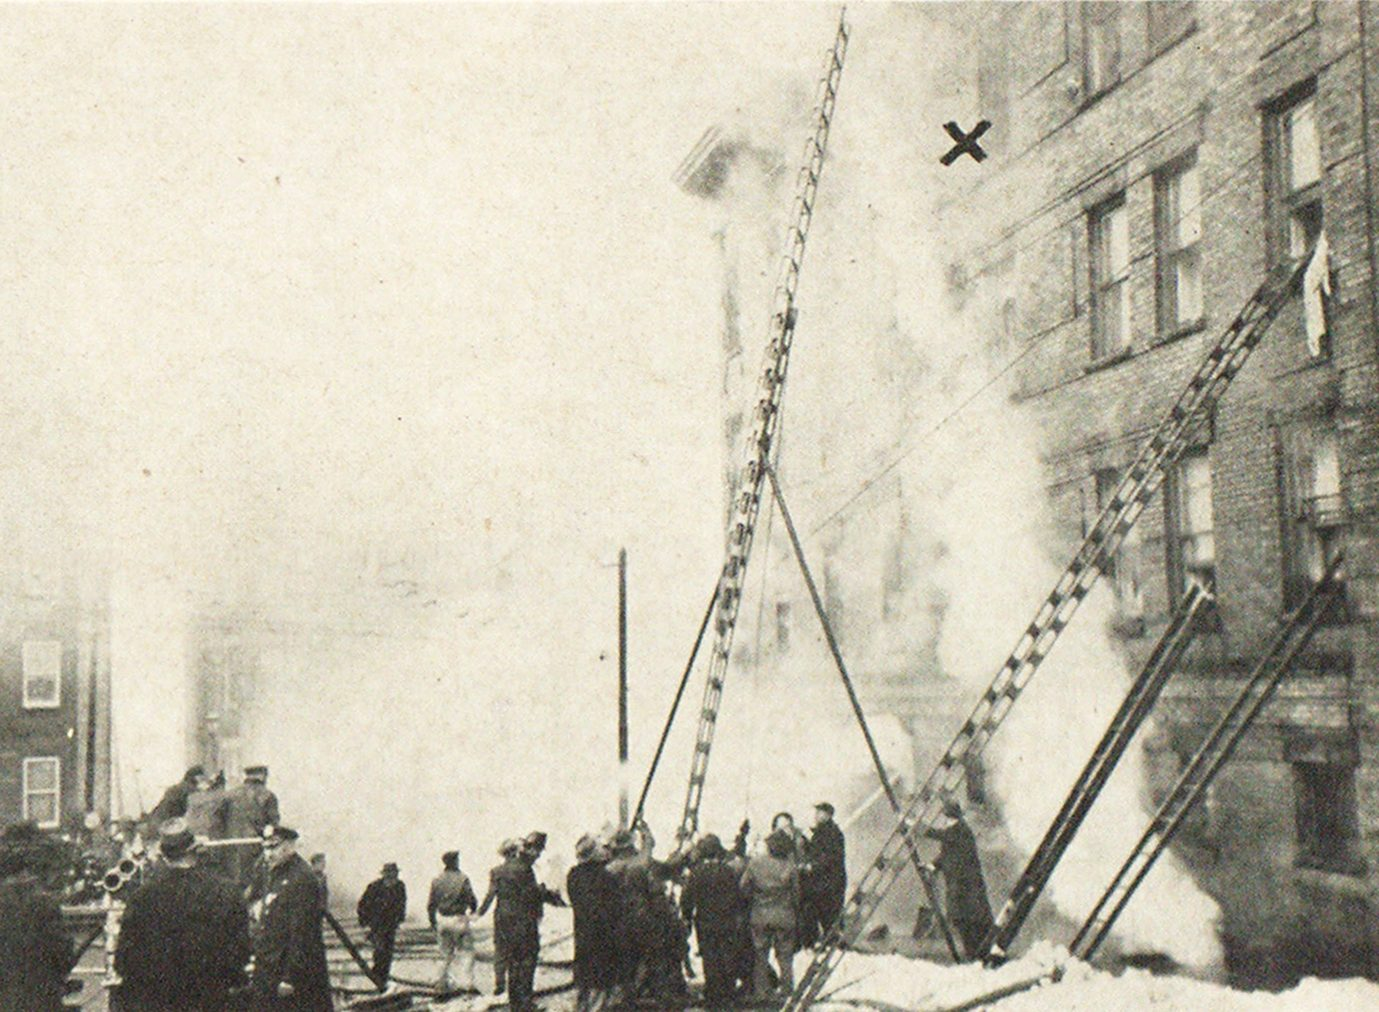 "Two Saved in Yonkers Following Four-Story Jumps Into Fire Net Yonkers, N. Y., firemen, aided by volunteers, laddering burning apartment at 1 Park avenue soon after elderly couple were rescued by dramatic drops into life net from location marked X"" on picture. Street grade prevented use of aerial ladders."